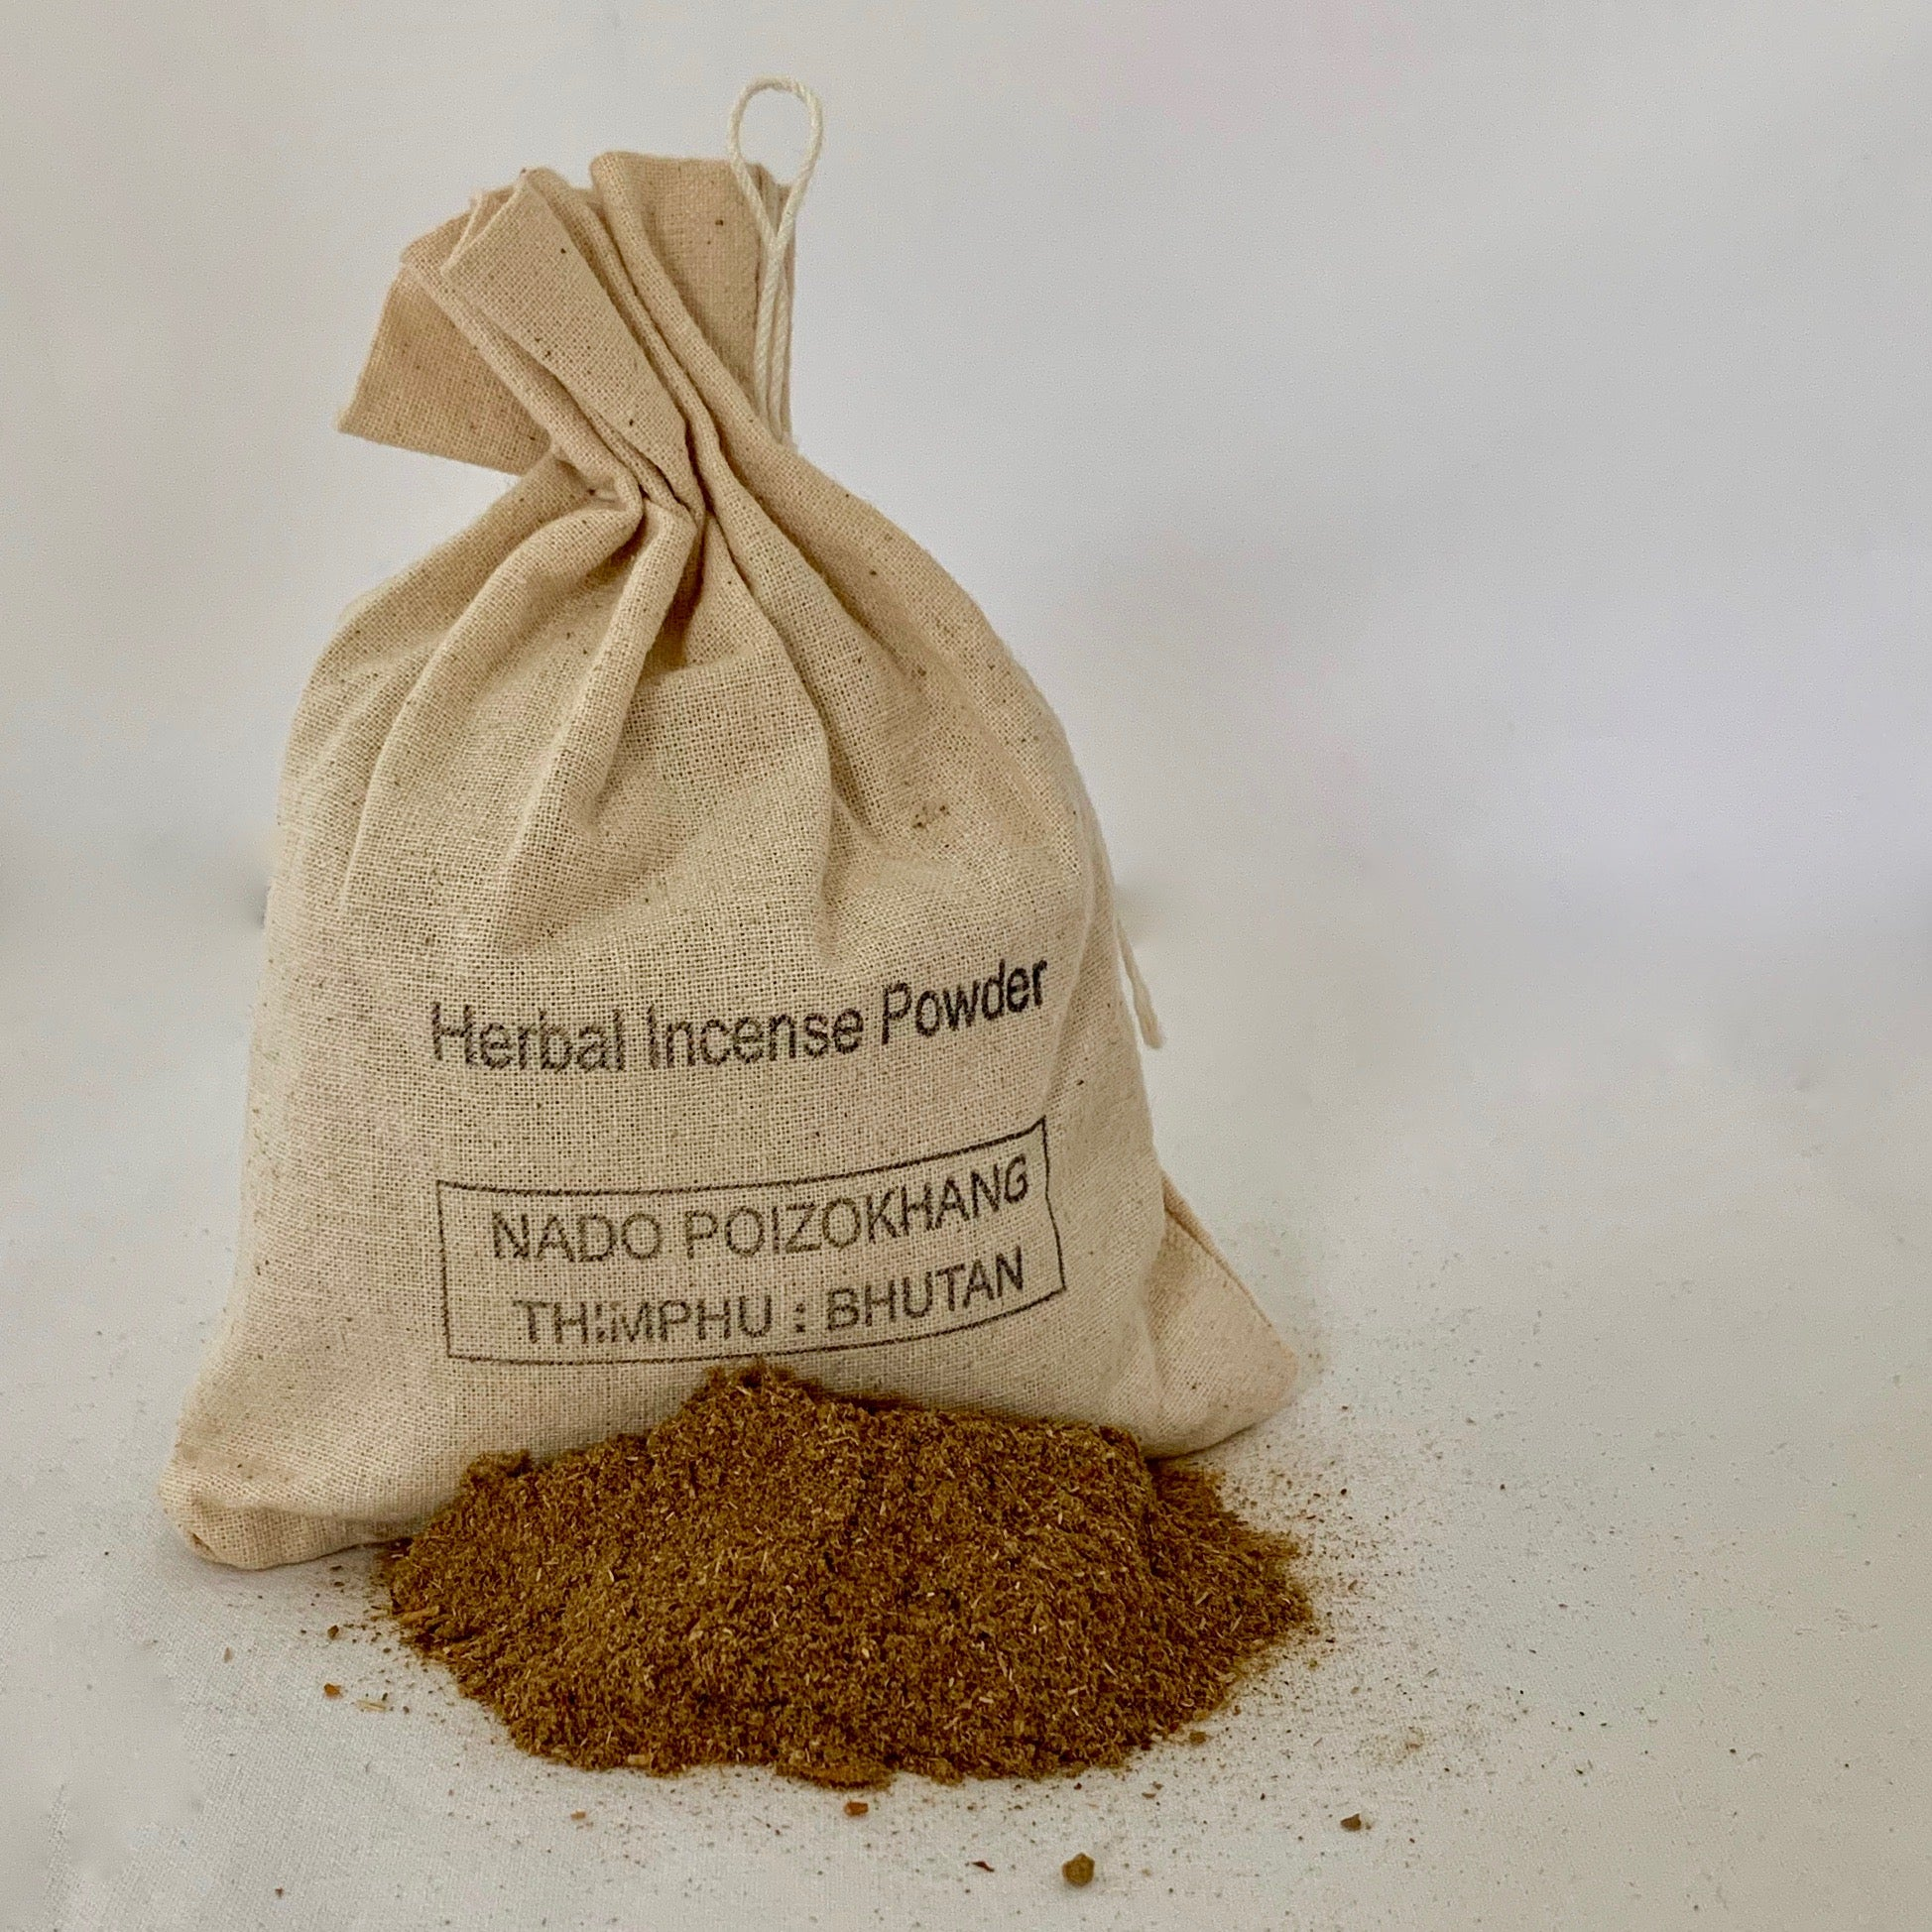 Nado's Bhutanese Herbal Incense Powder